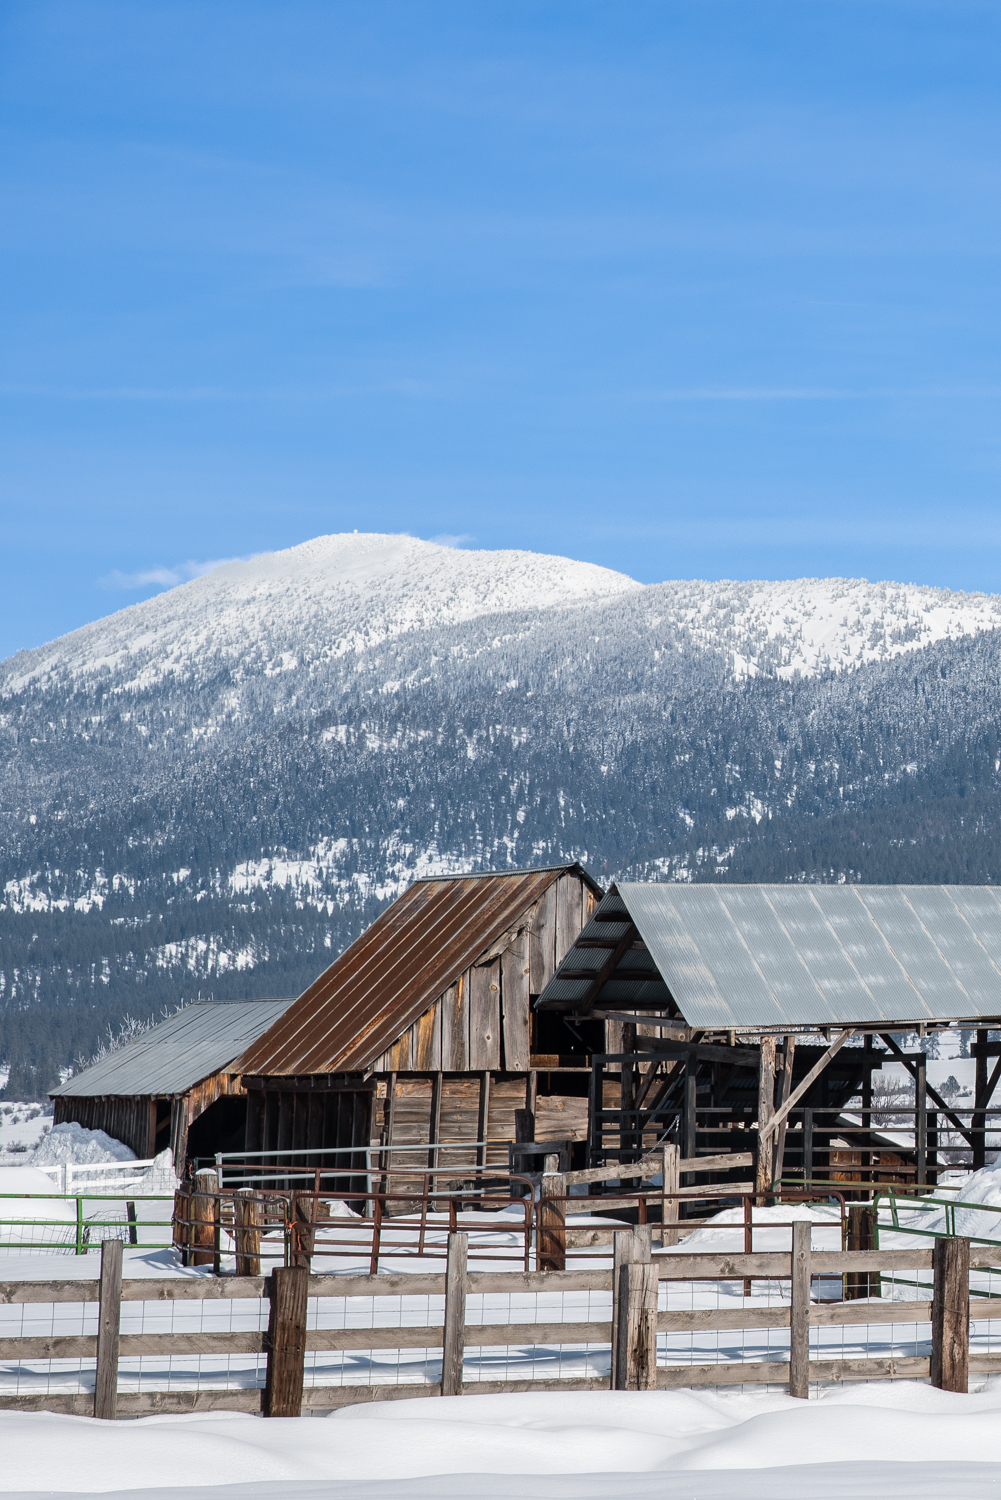 Corral Buildings in Winter